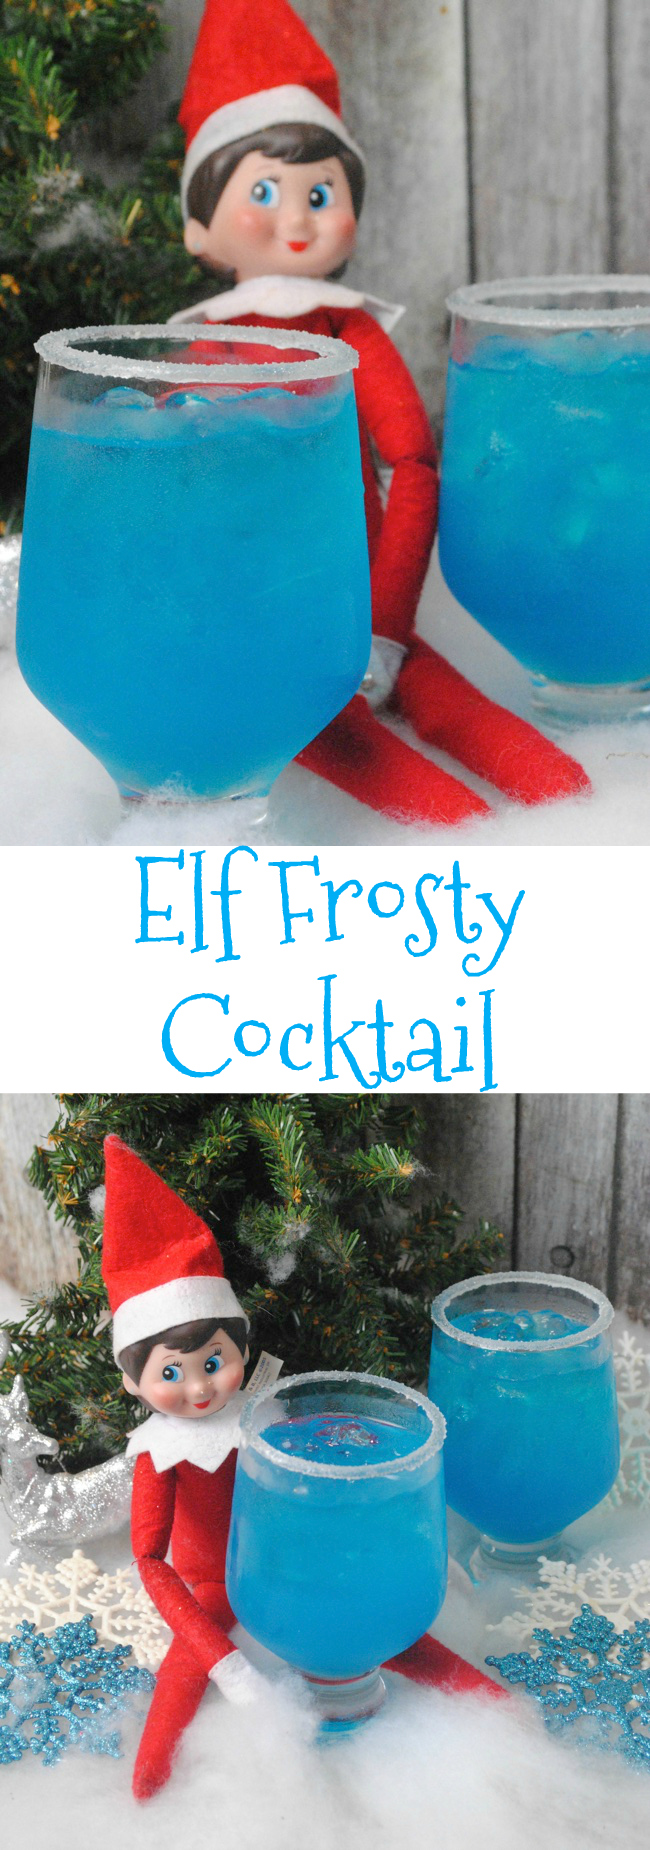 It's Elf on the Shelf time and maybe you might need a little pick me up to get you through the month. So we are sharing an Elf Frosty Cocktail Recipe.